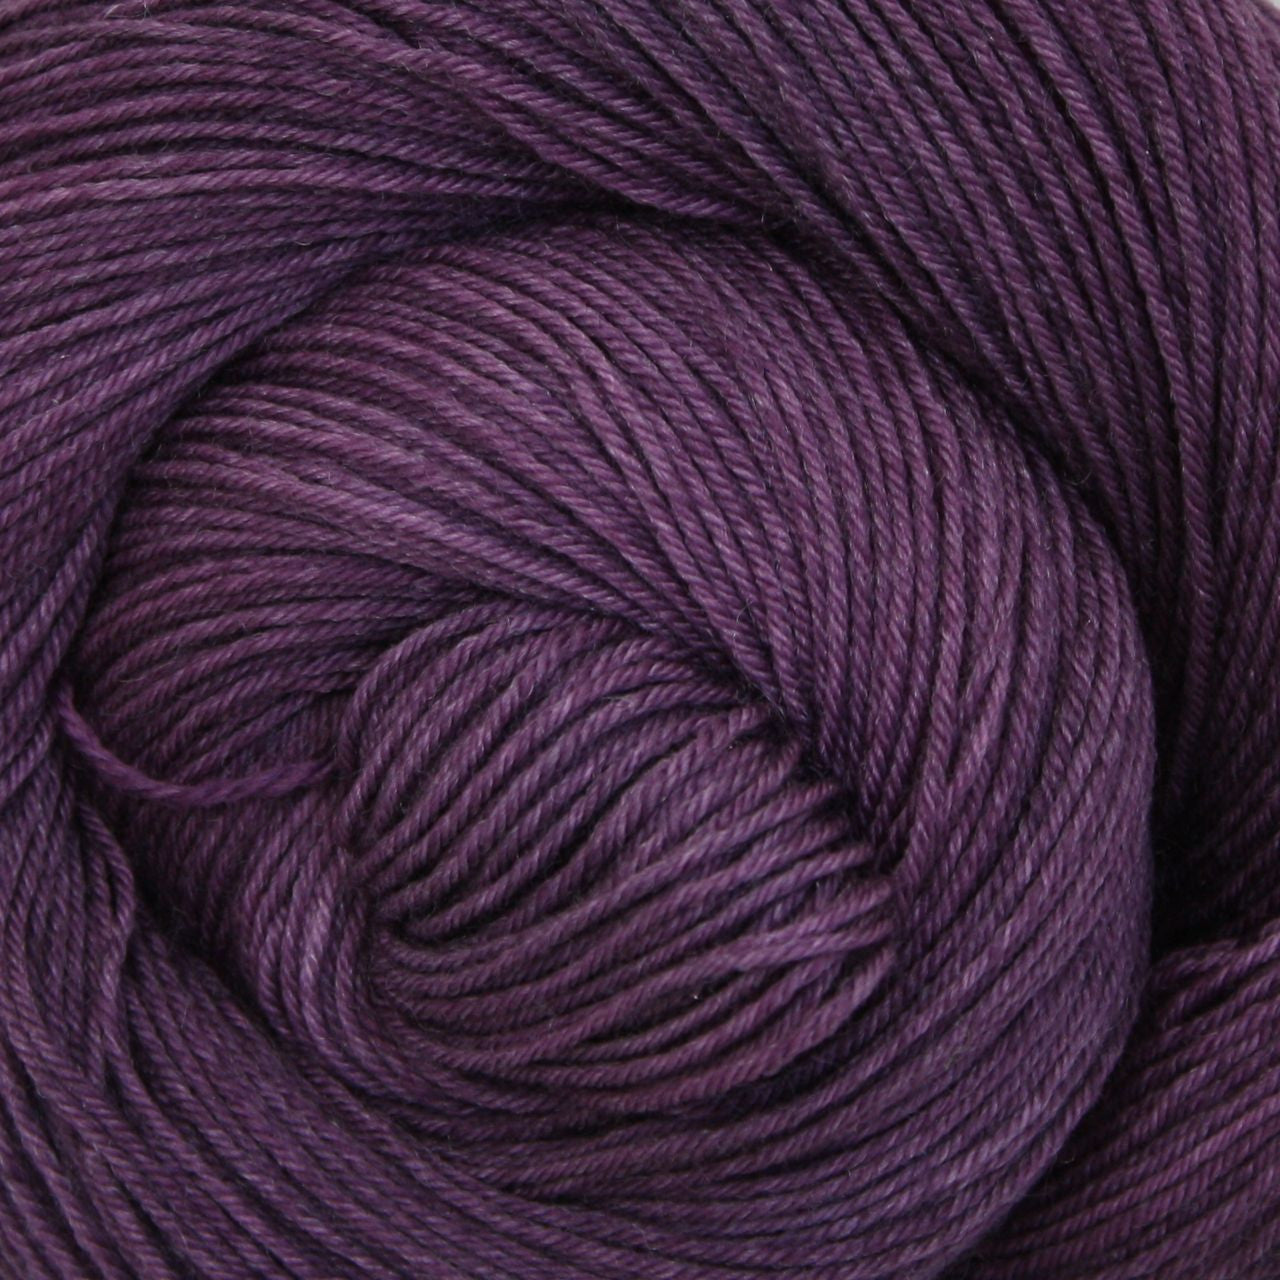 Altair Yarn | Colorway: Eggplant